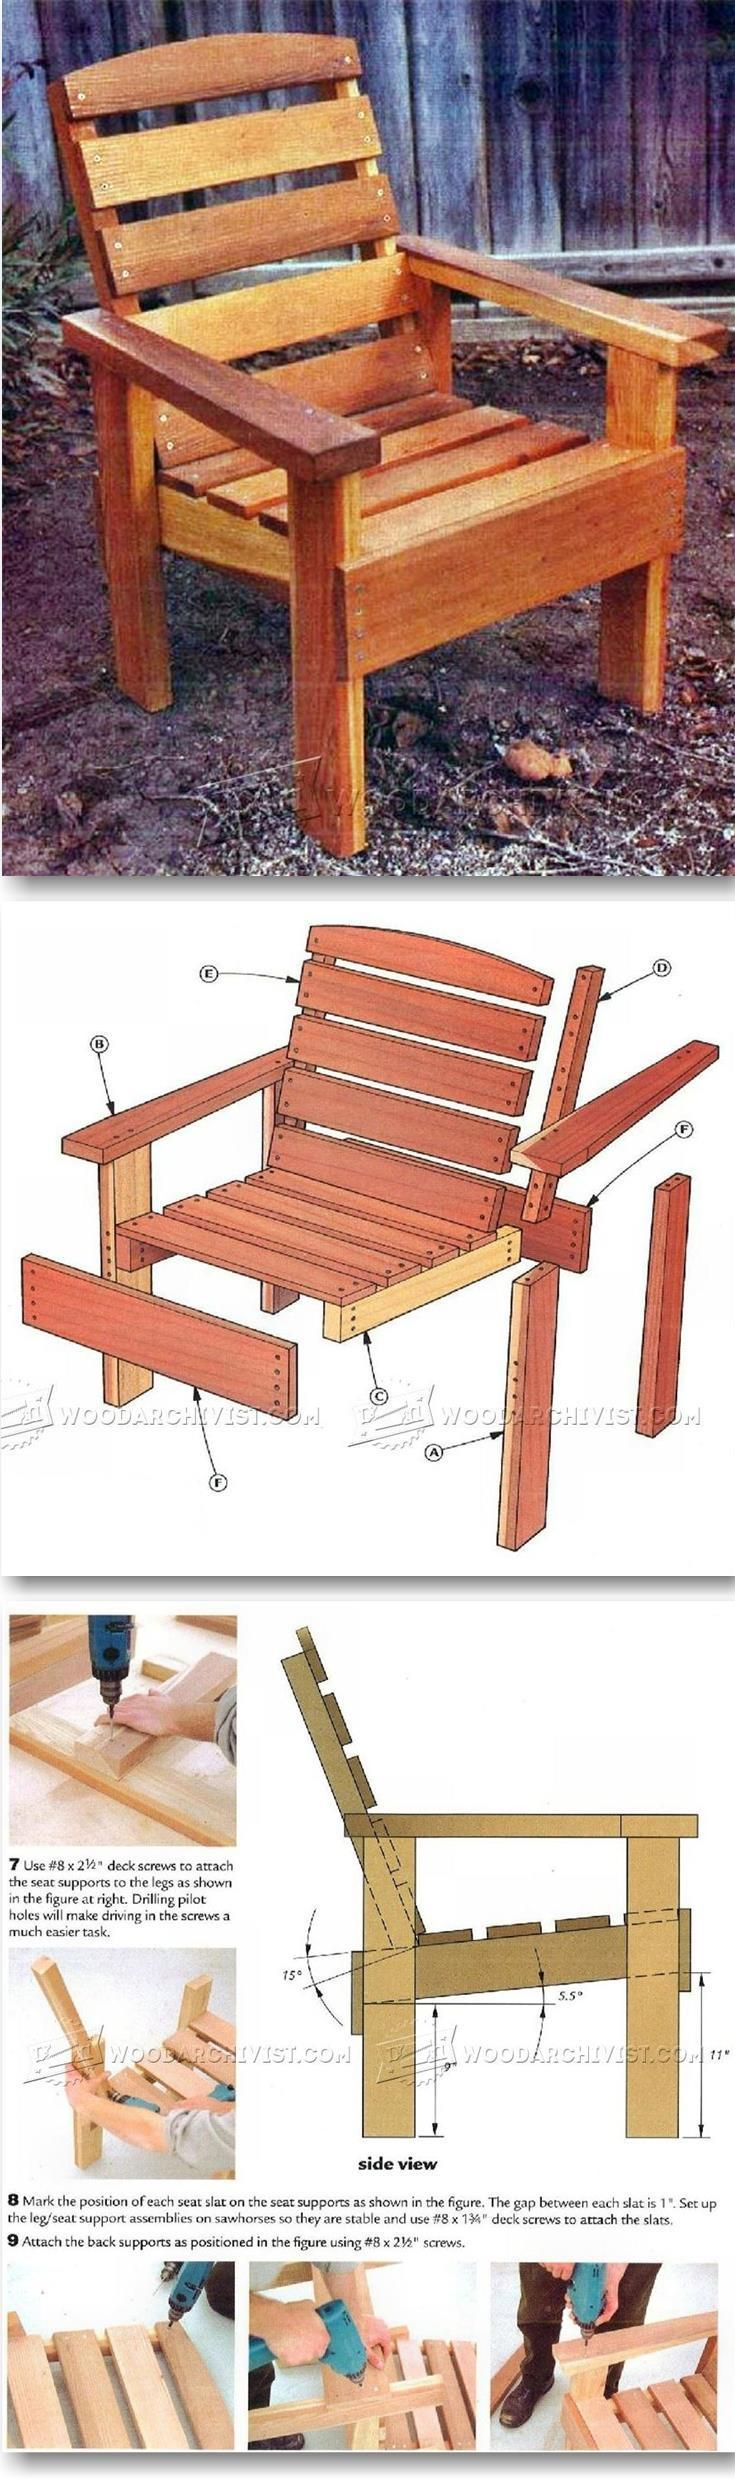 Making Wood Working Plans Work For You Diy Outdoor Furniture Diy Outdoor Furniture Plans Outdoor Furniture Plans